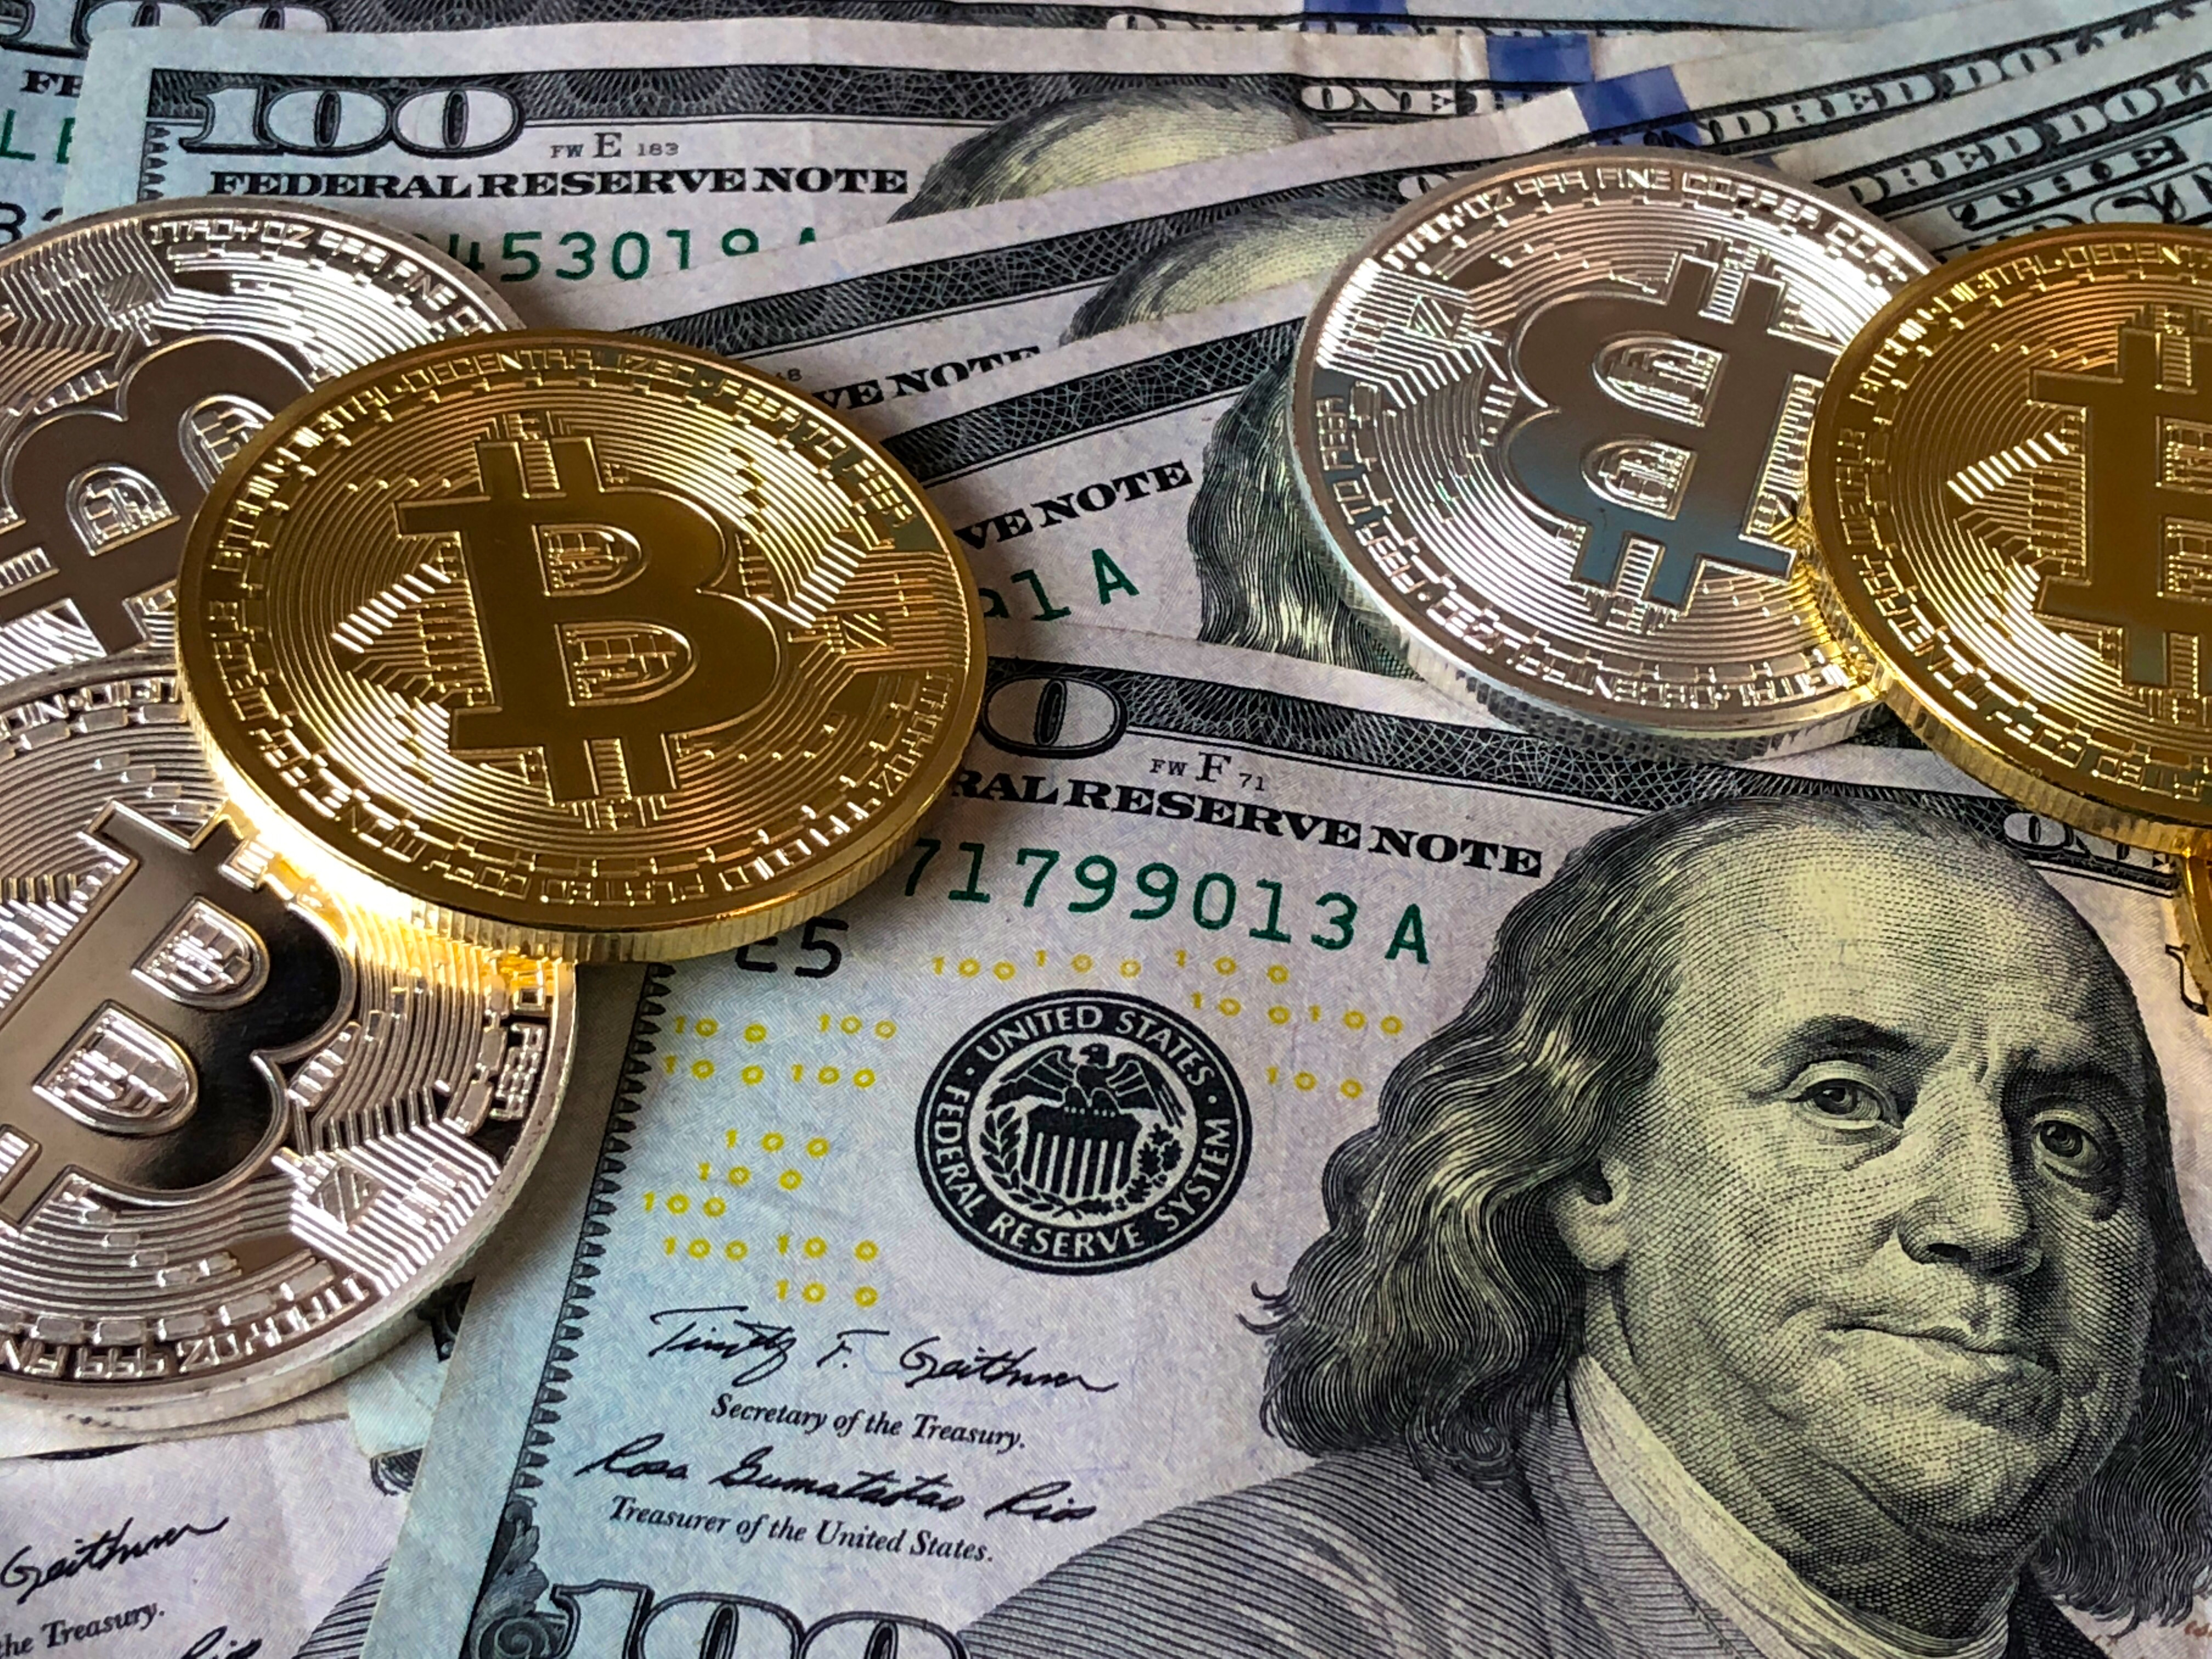 delaware county finra arbitration attorney - For Most Investors Bitcoin and other Cryptocurrencies are Unsuitable Investments